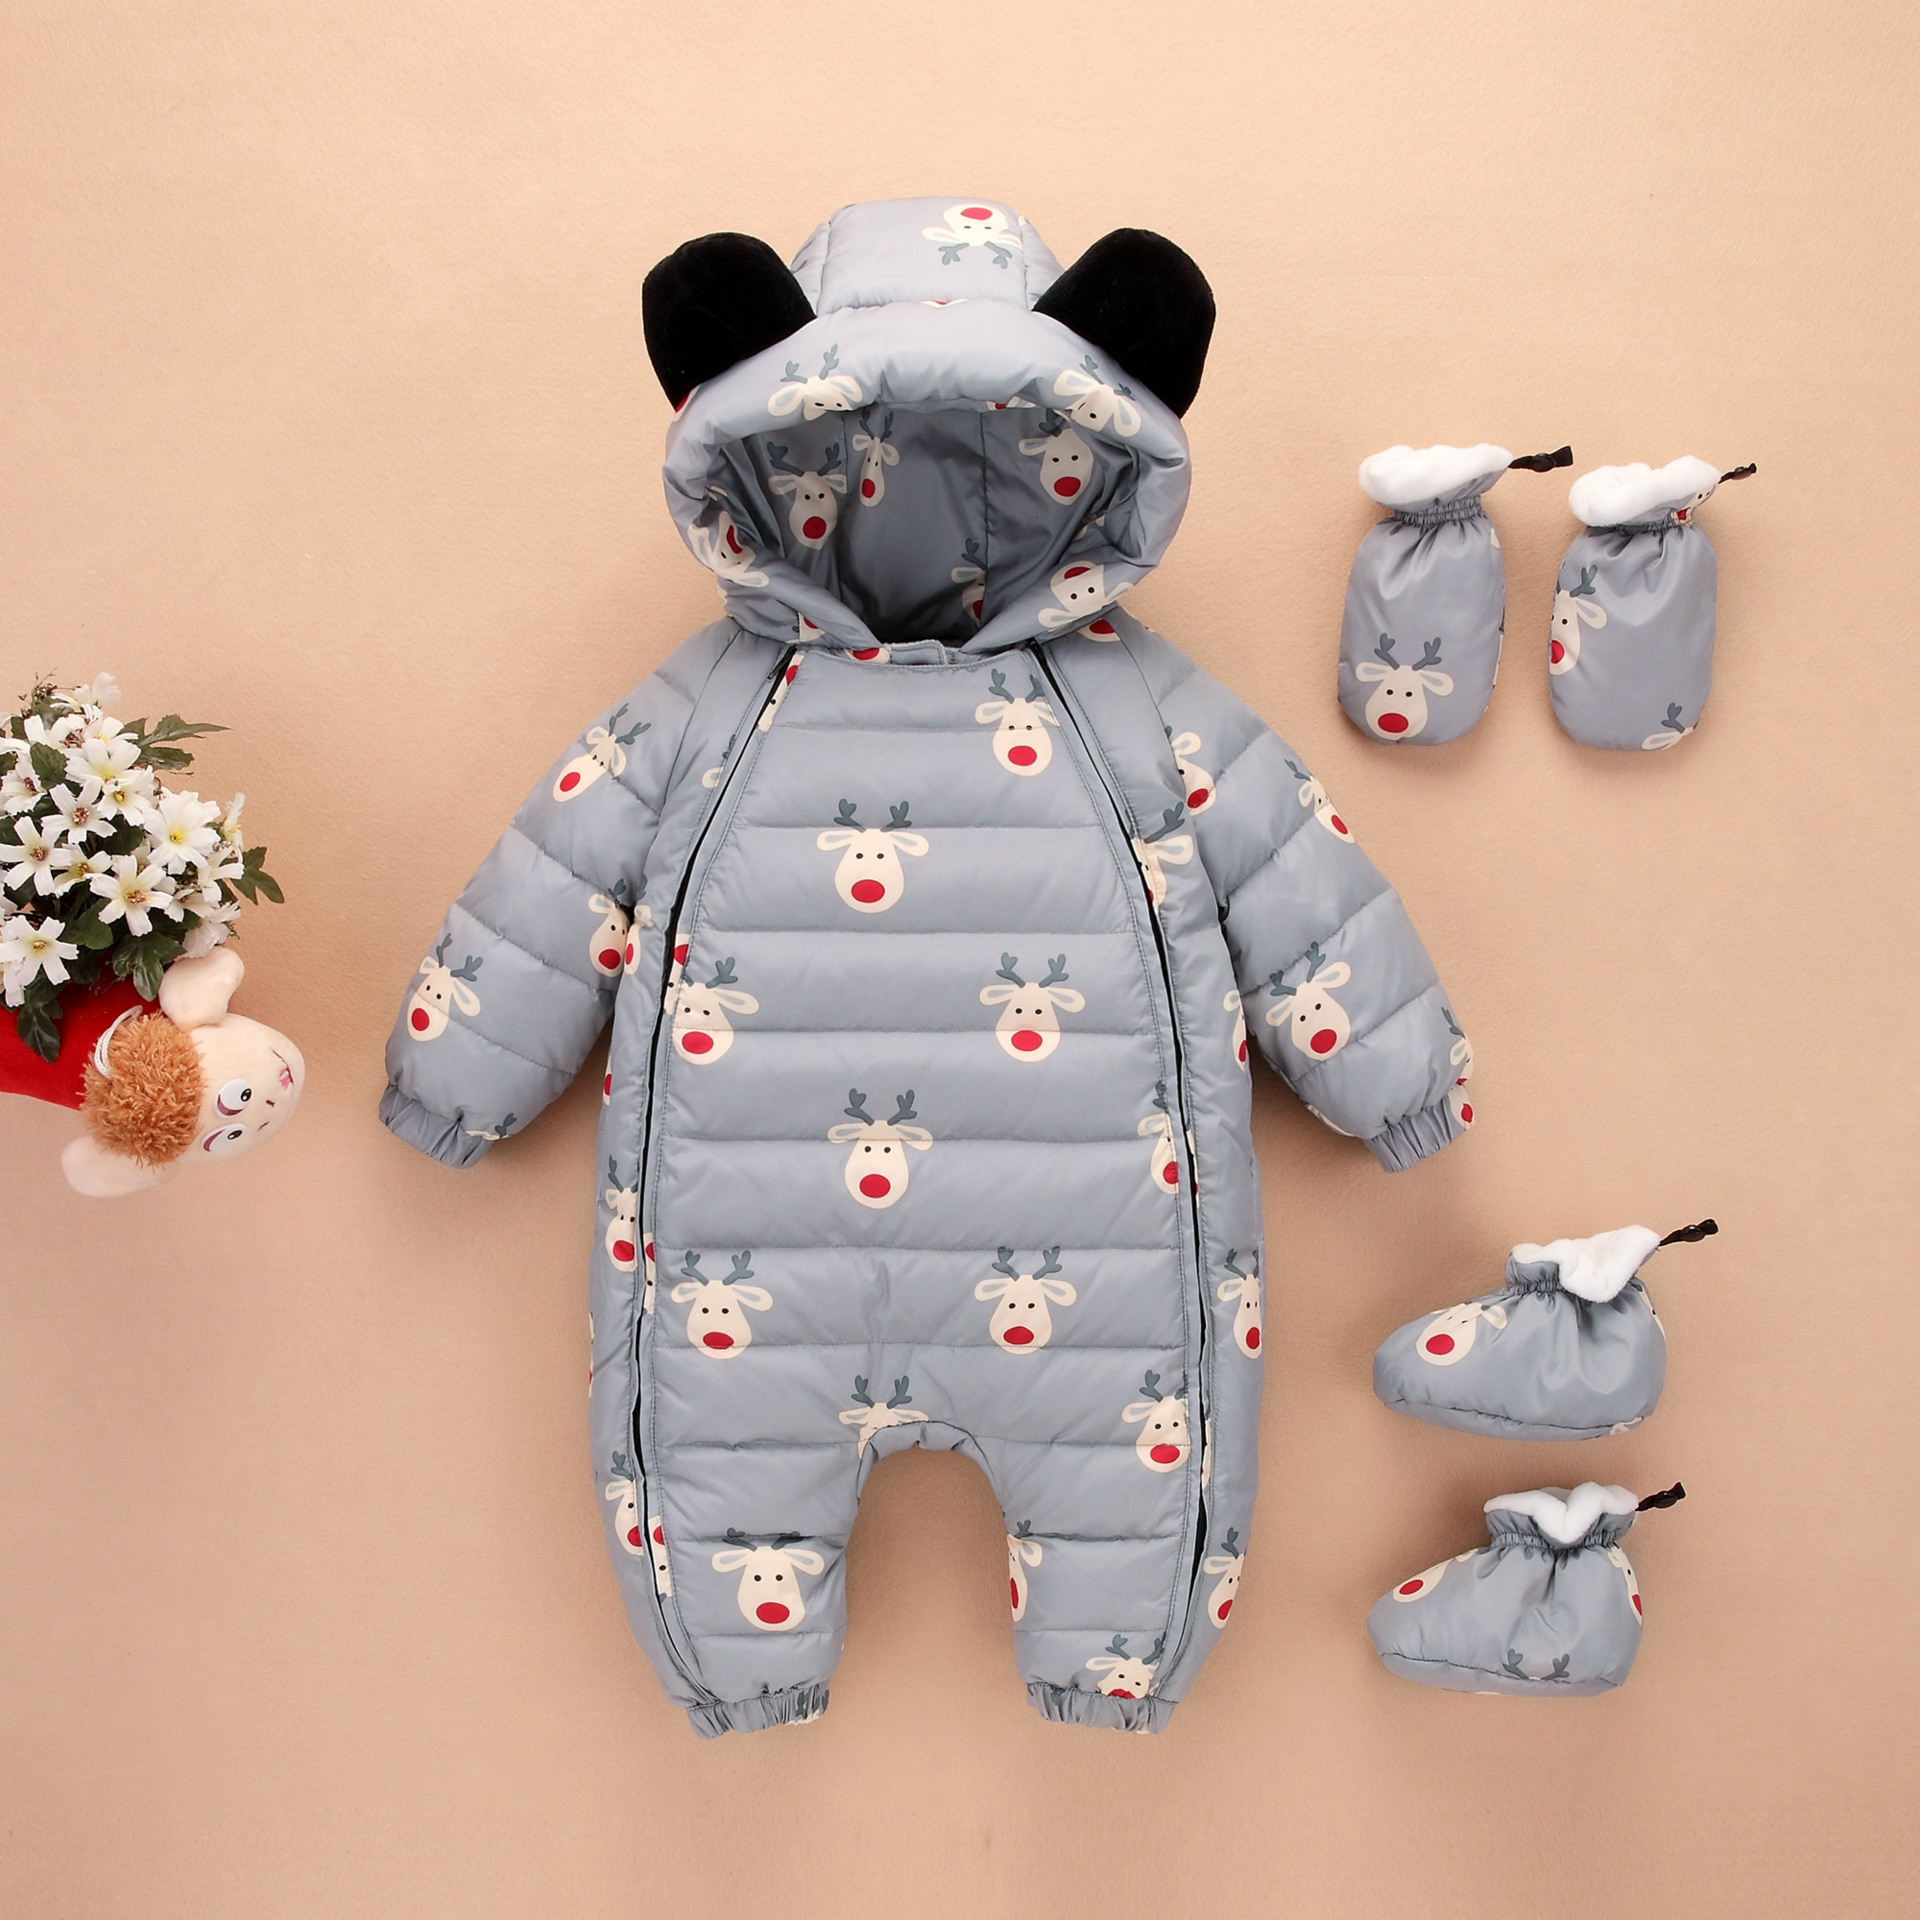 2017 For RU Winter White Duck Down Baby Rompers Baby Snowsuit Infant Boy Girl Cartoon One-piece Outfit Childrens Down Clothing <br>